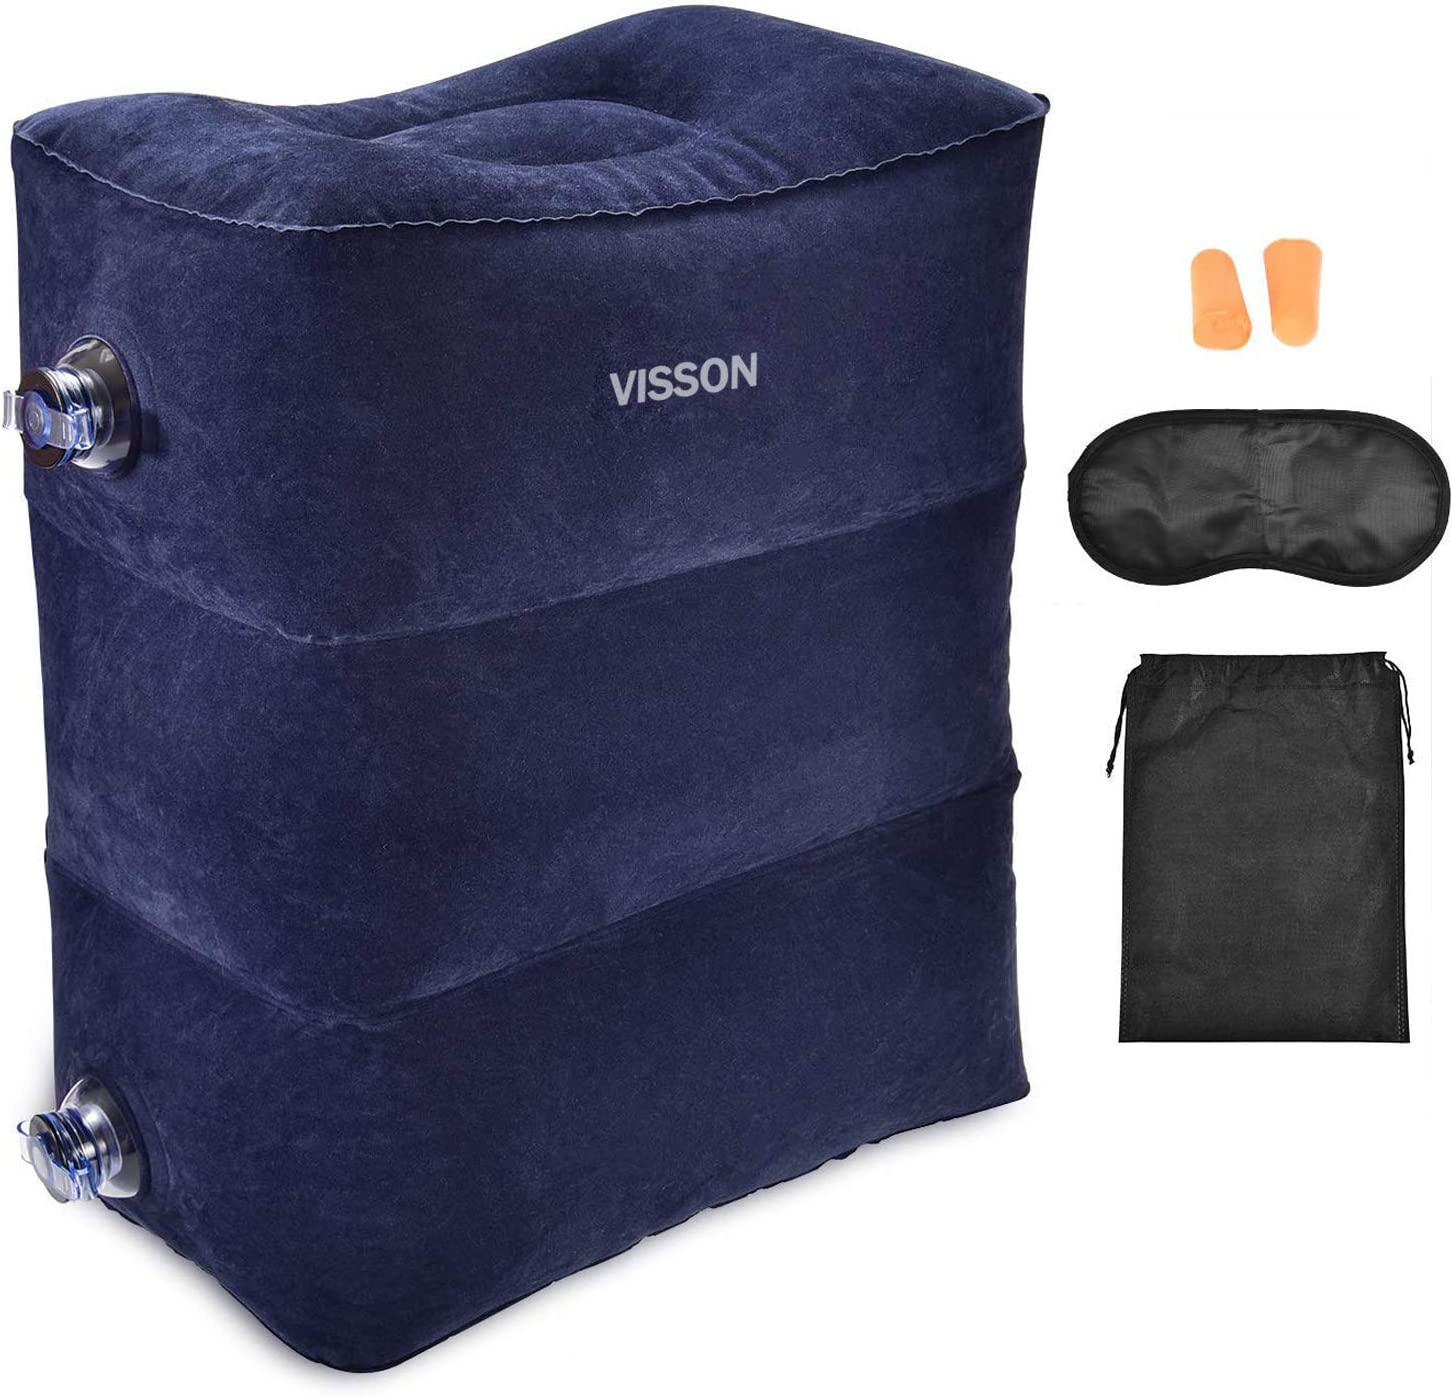 Airplane Footrest - Inflatable Height Pillow Topics on Max 78% OFF TV Adjustable Travel